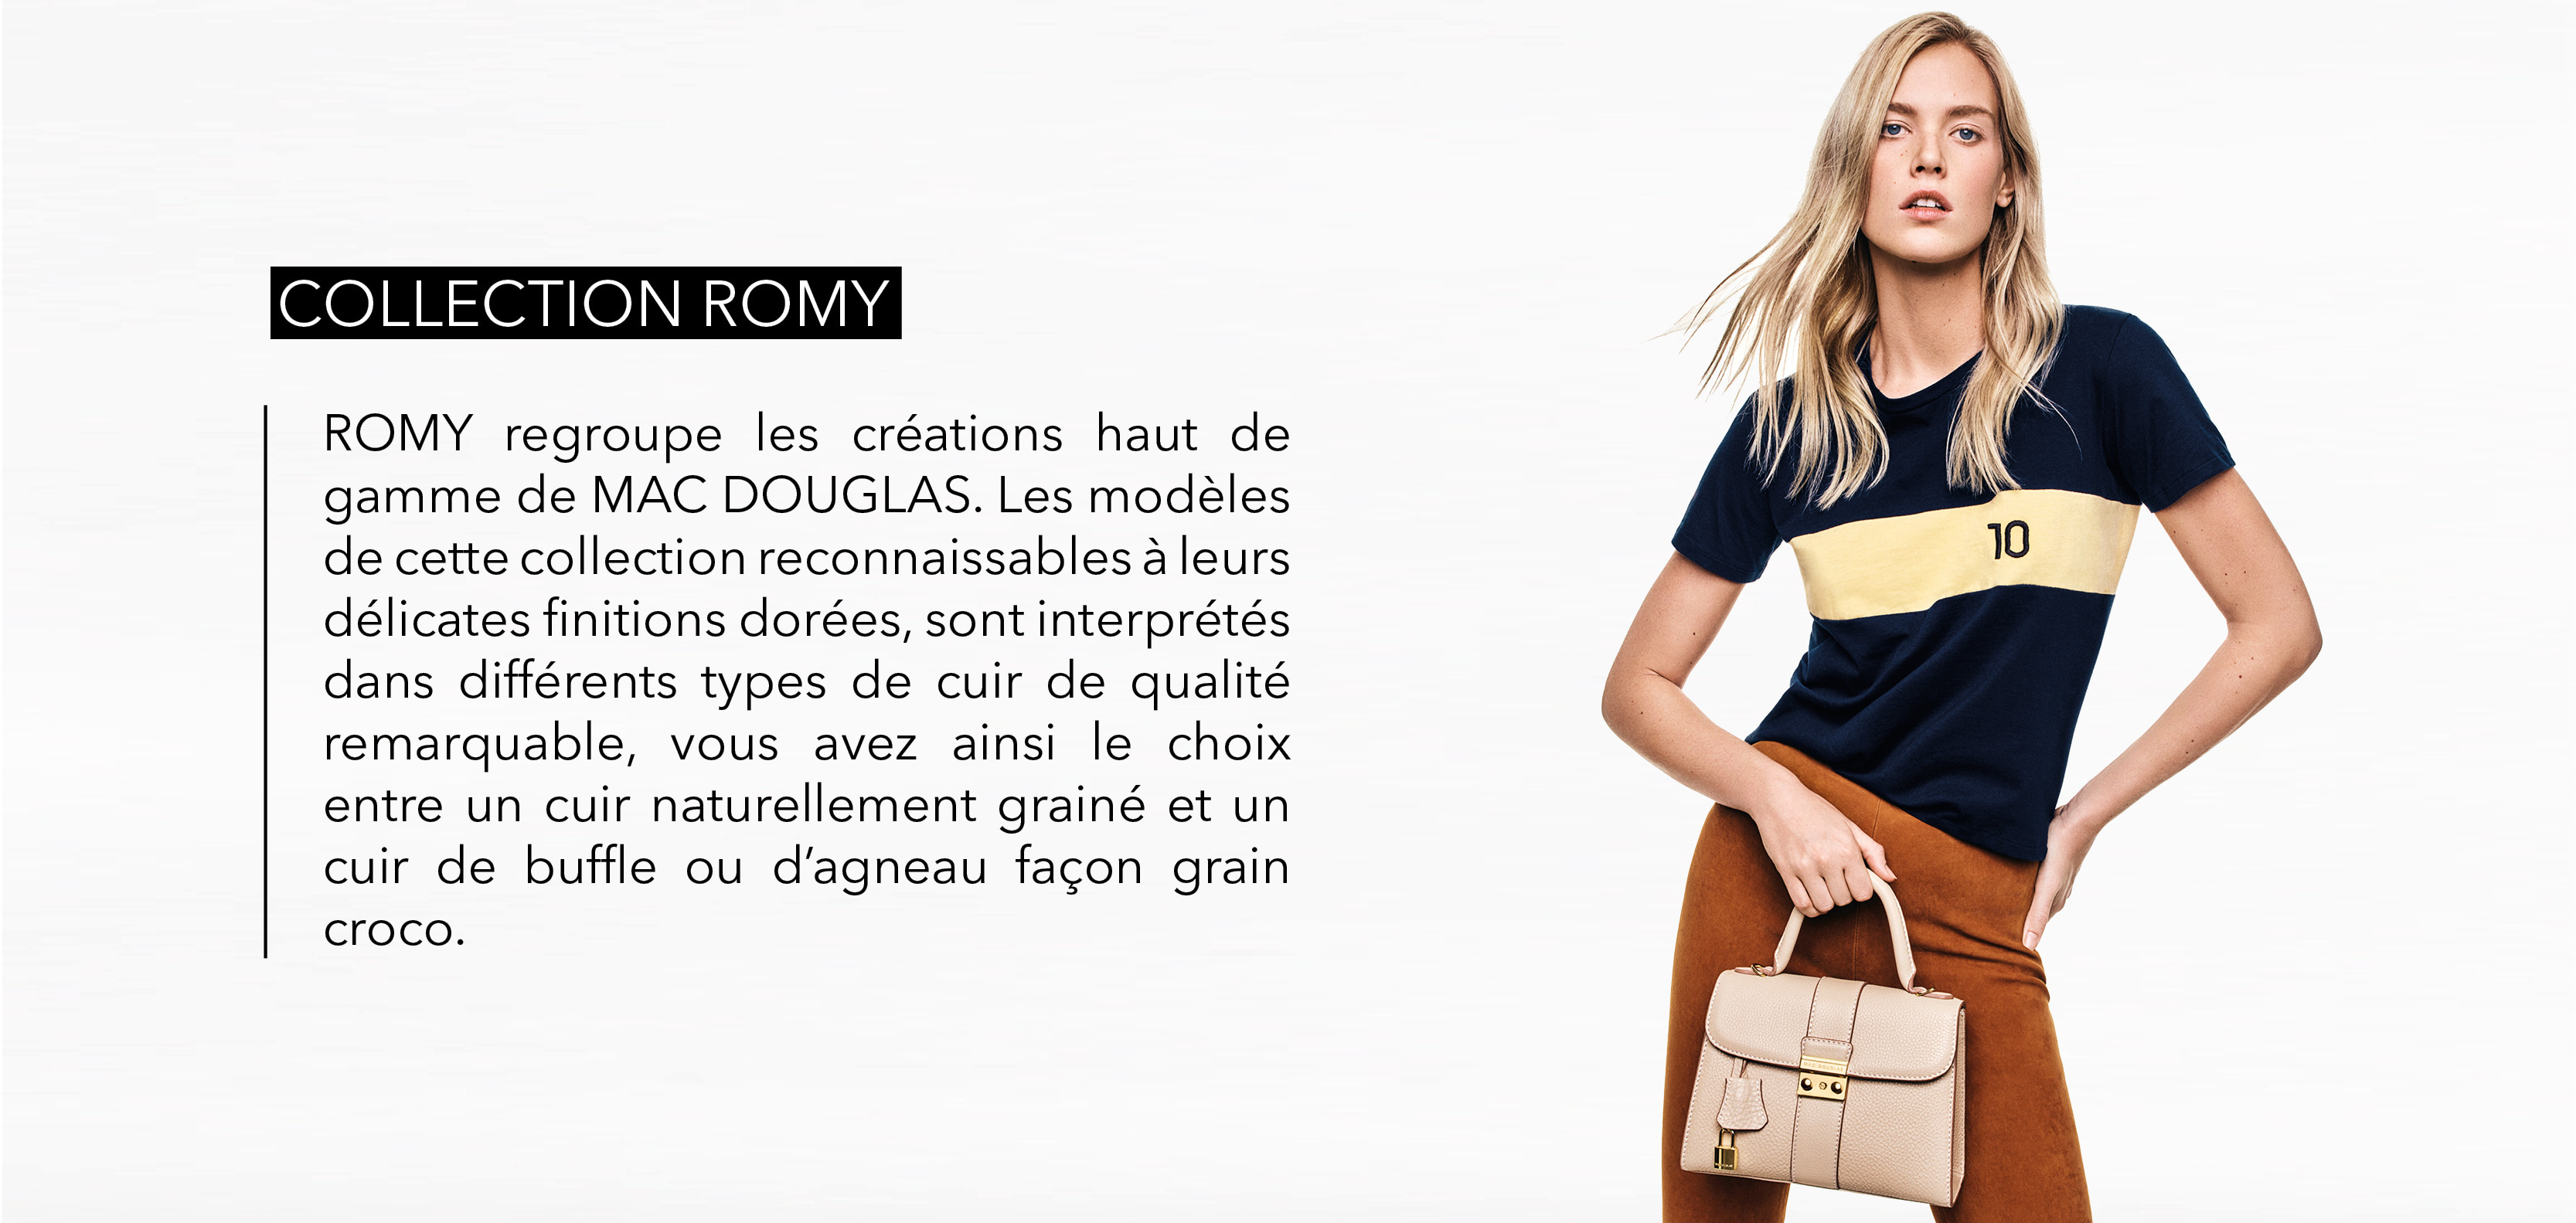 COLLECTION ROMY